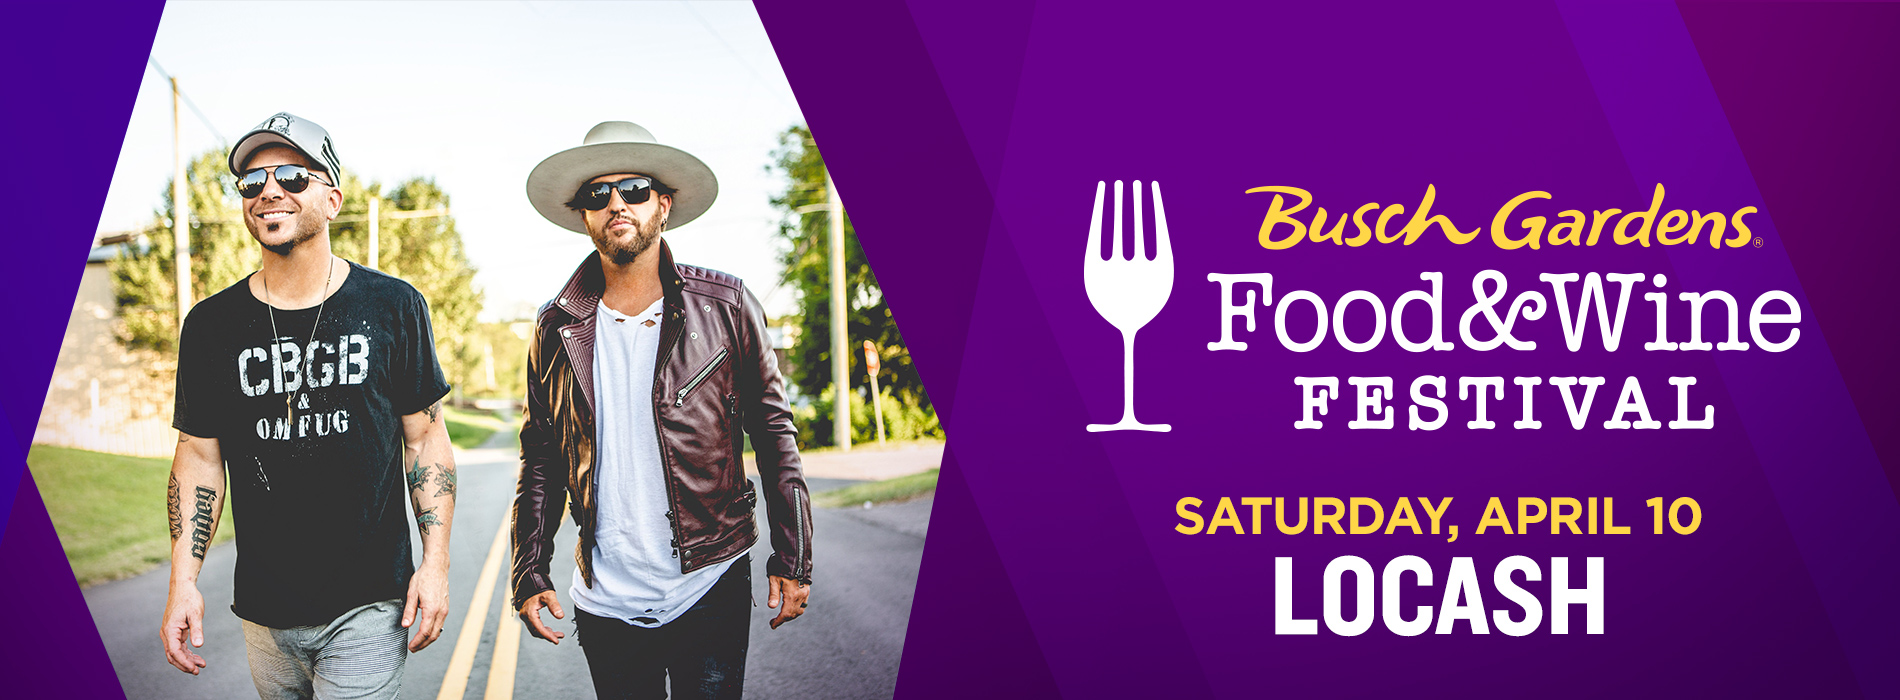 Saturday, April 3: LOCASH